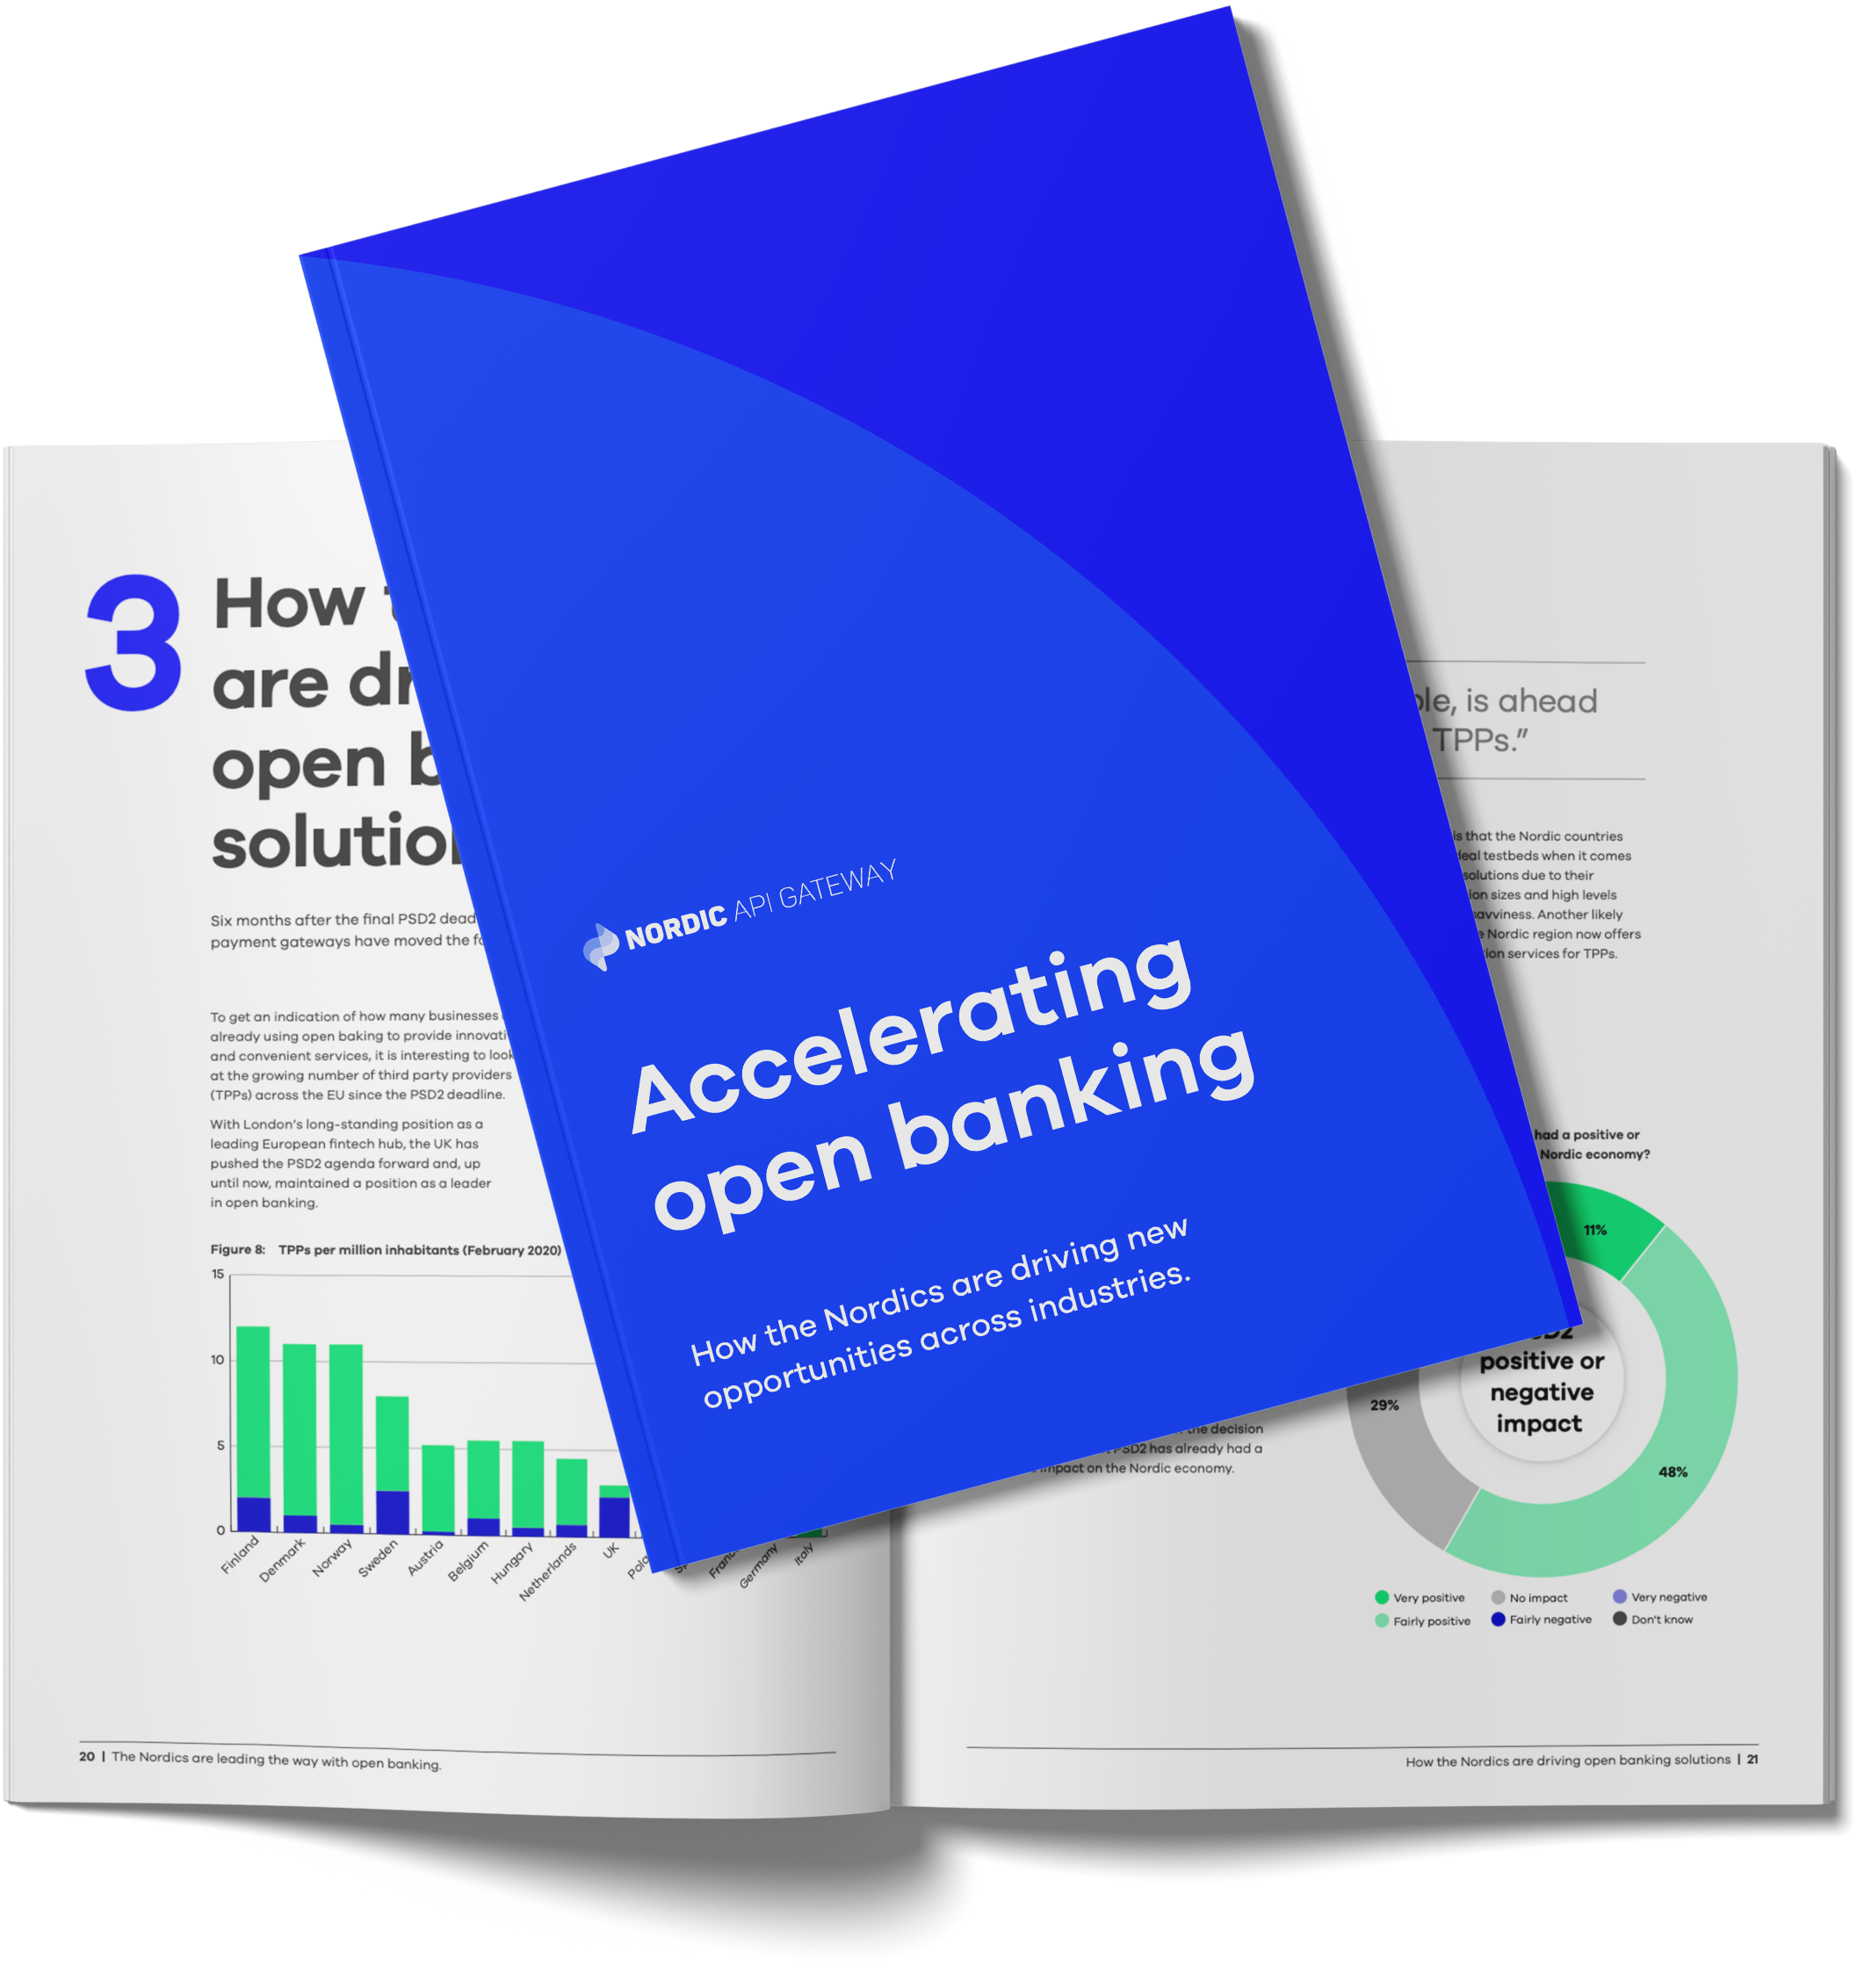 The Nordics are accelerating open banking across industries